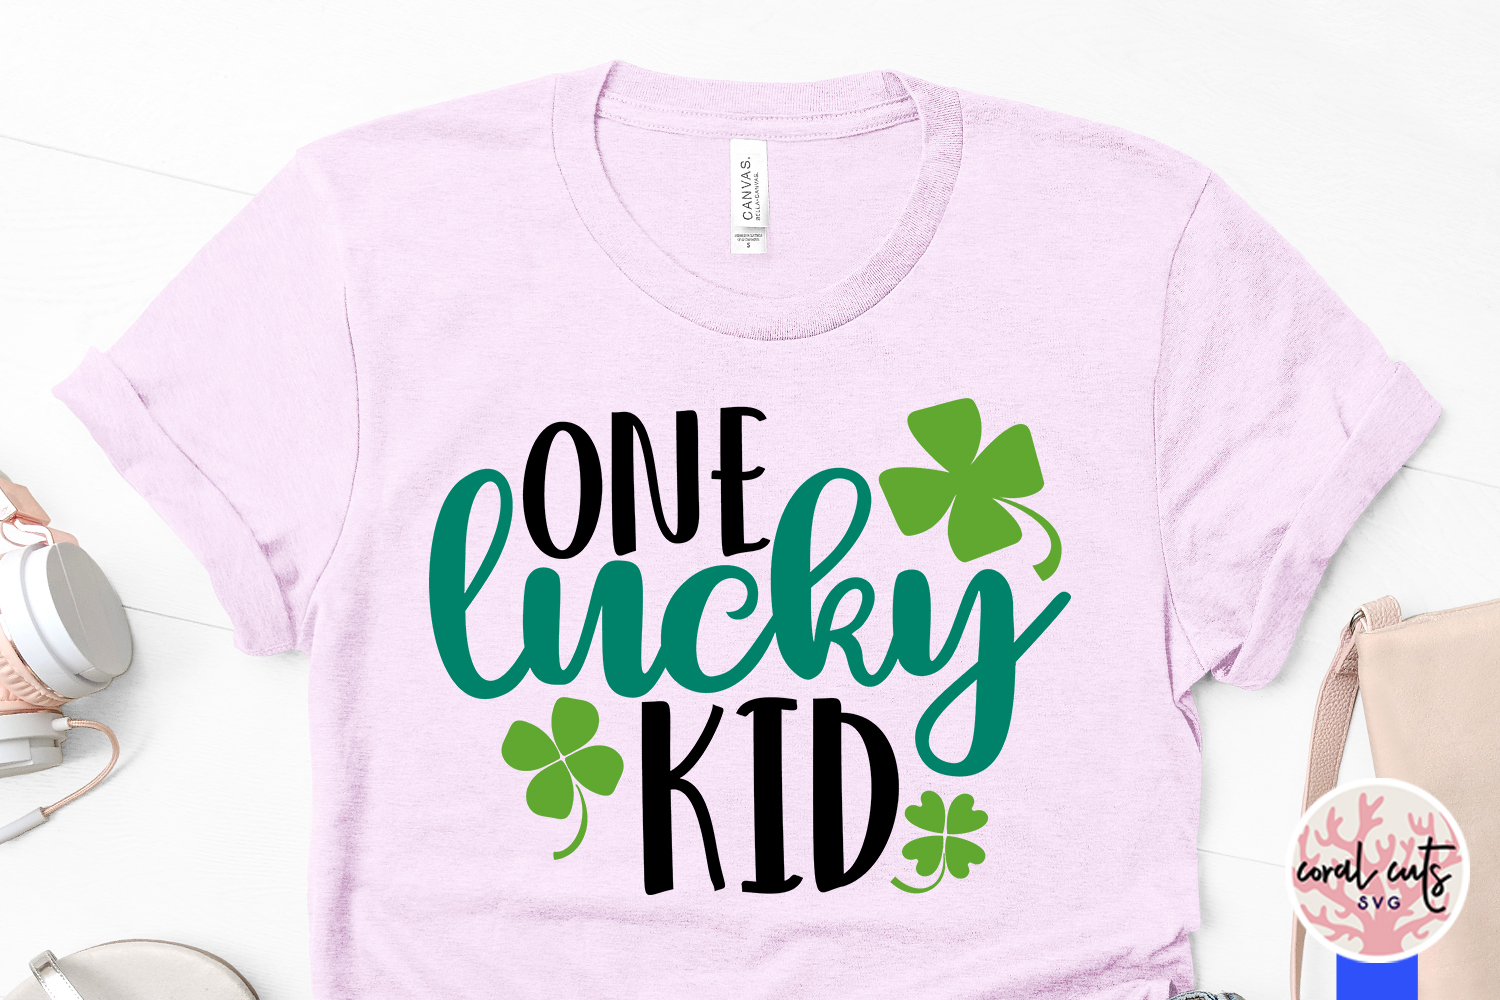 One Lucky Kid - St. Patrick's Day SVG EPS DXF PNG example image 3